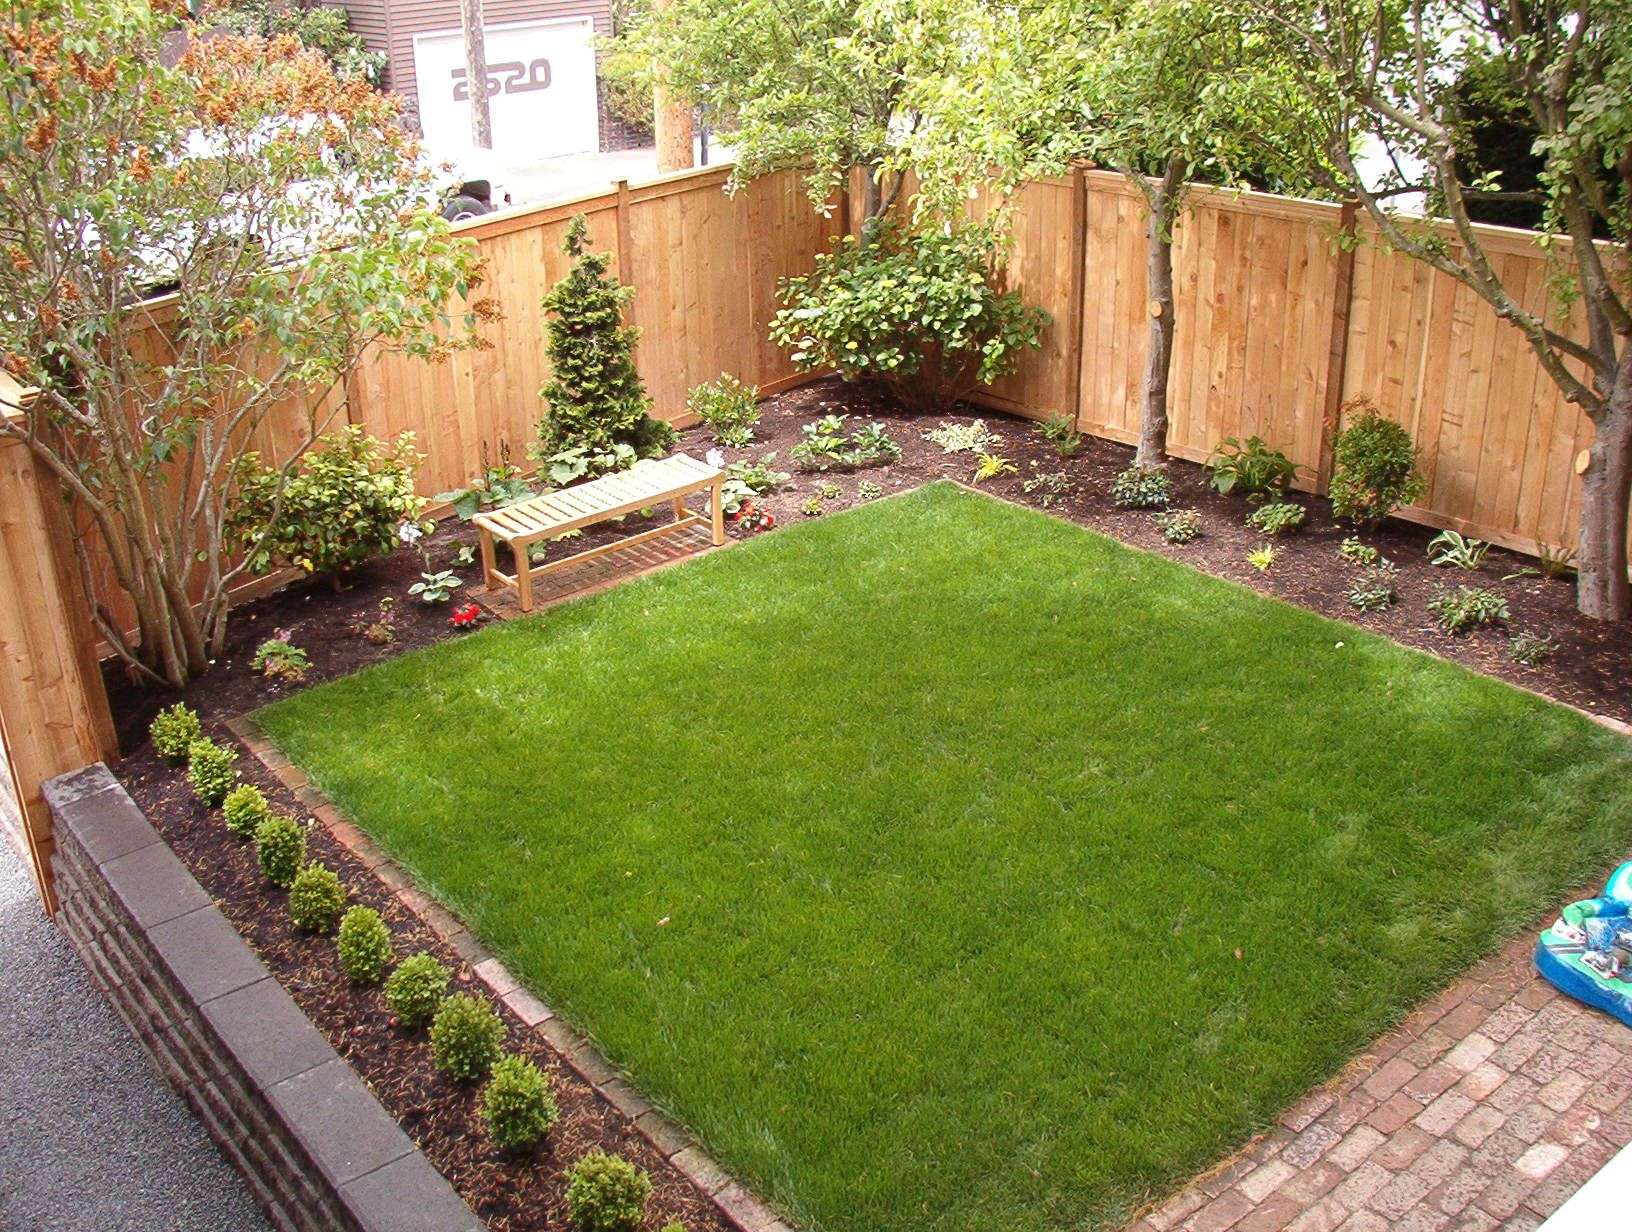 Sod lawn for children to play on landscape ideas for Small yard landscaping designs